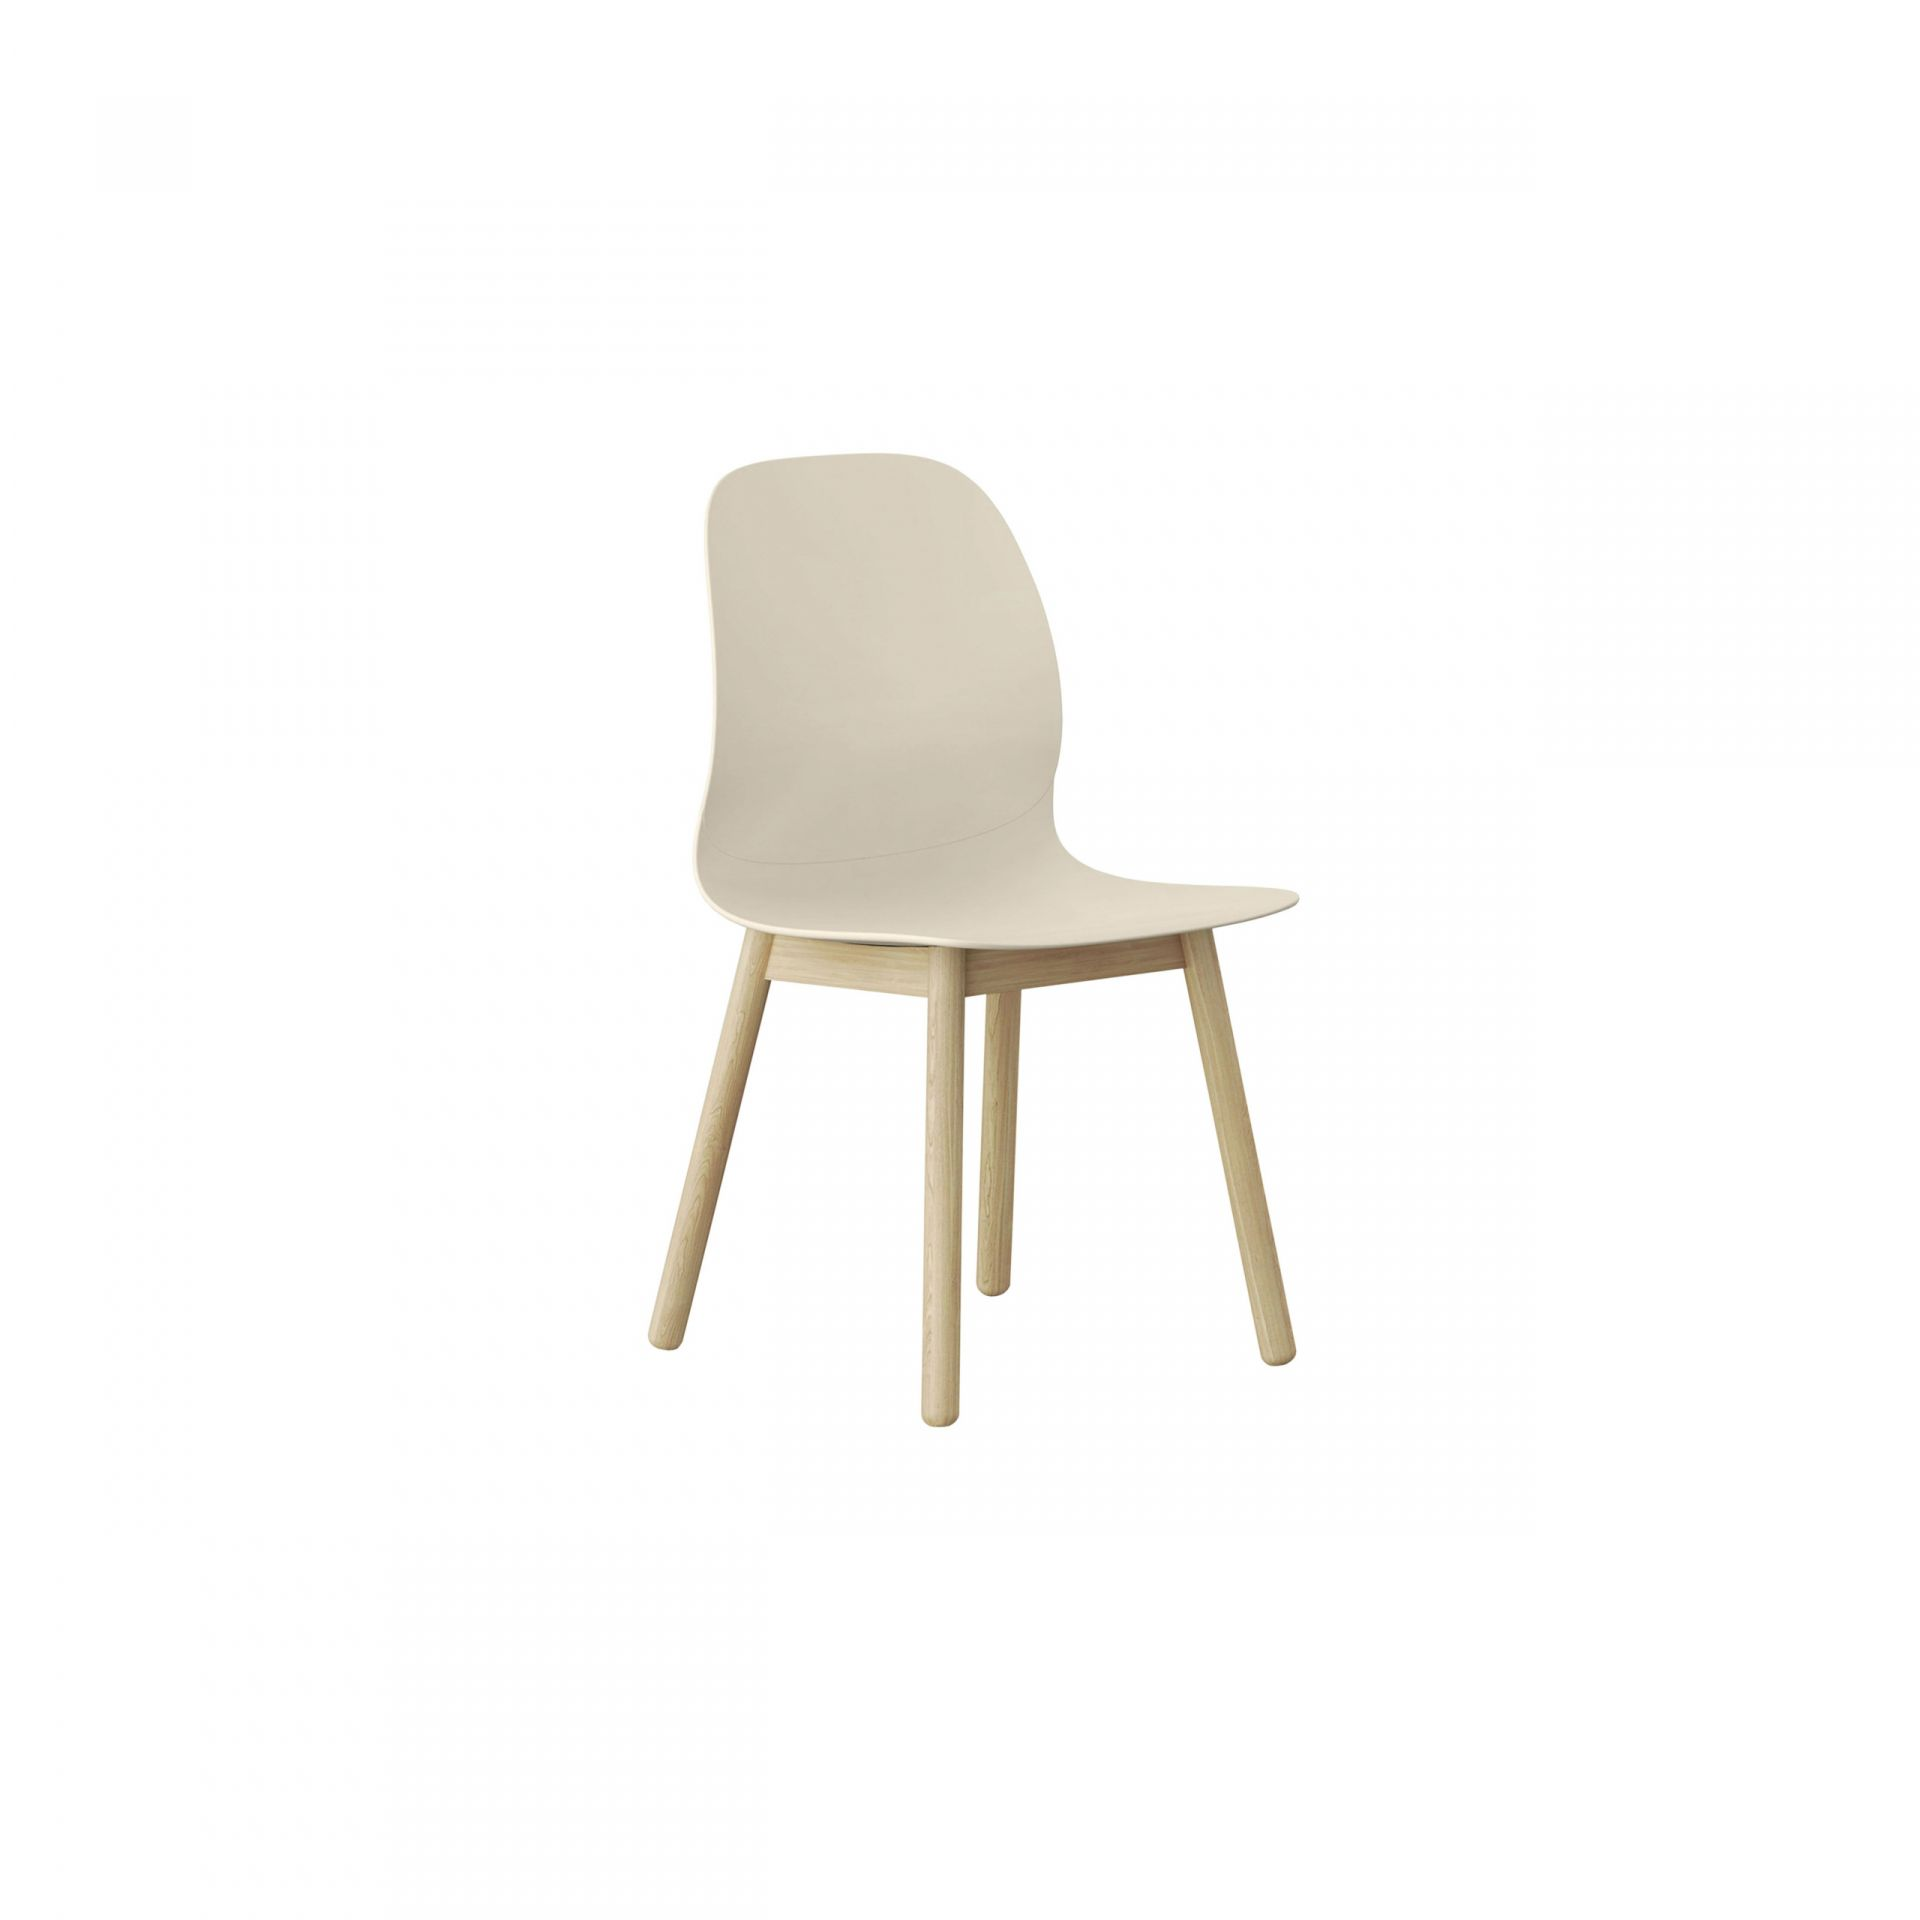 Archie Chair with wooden legs